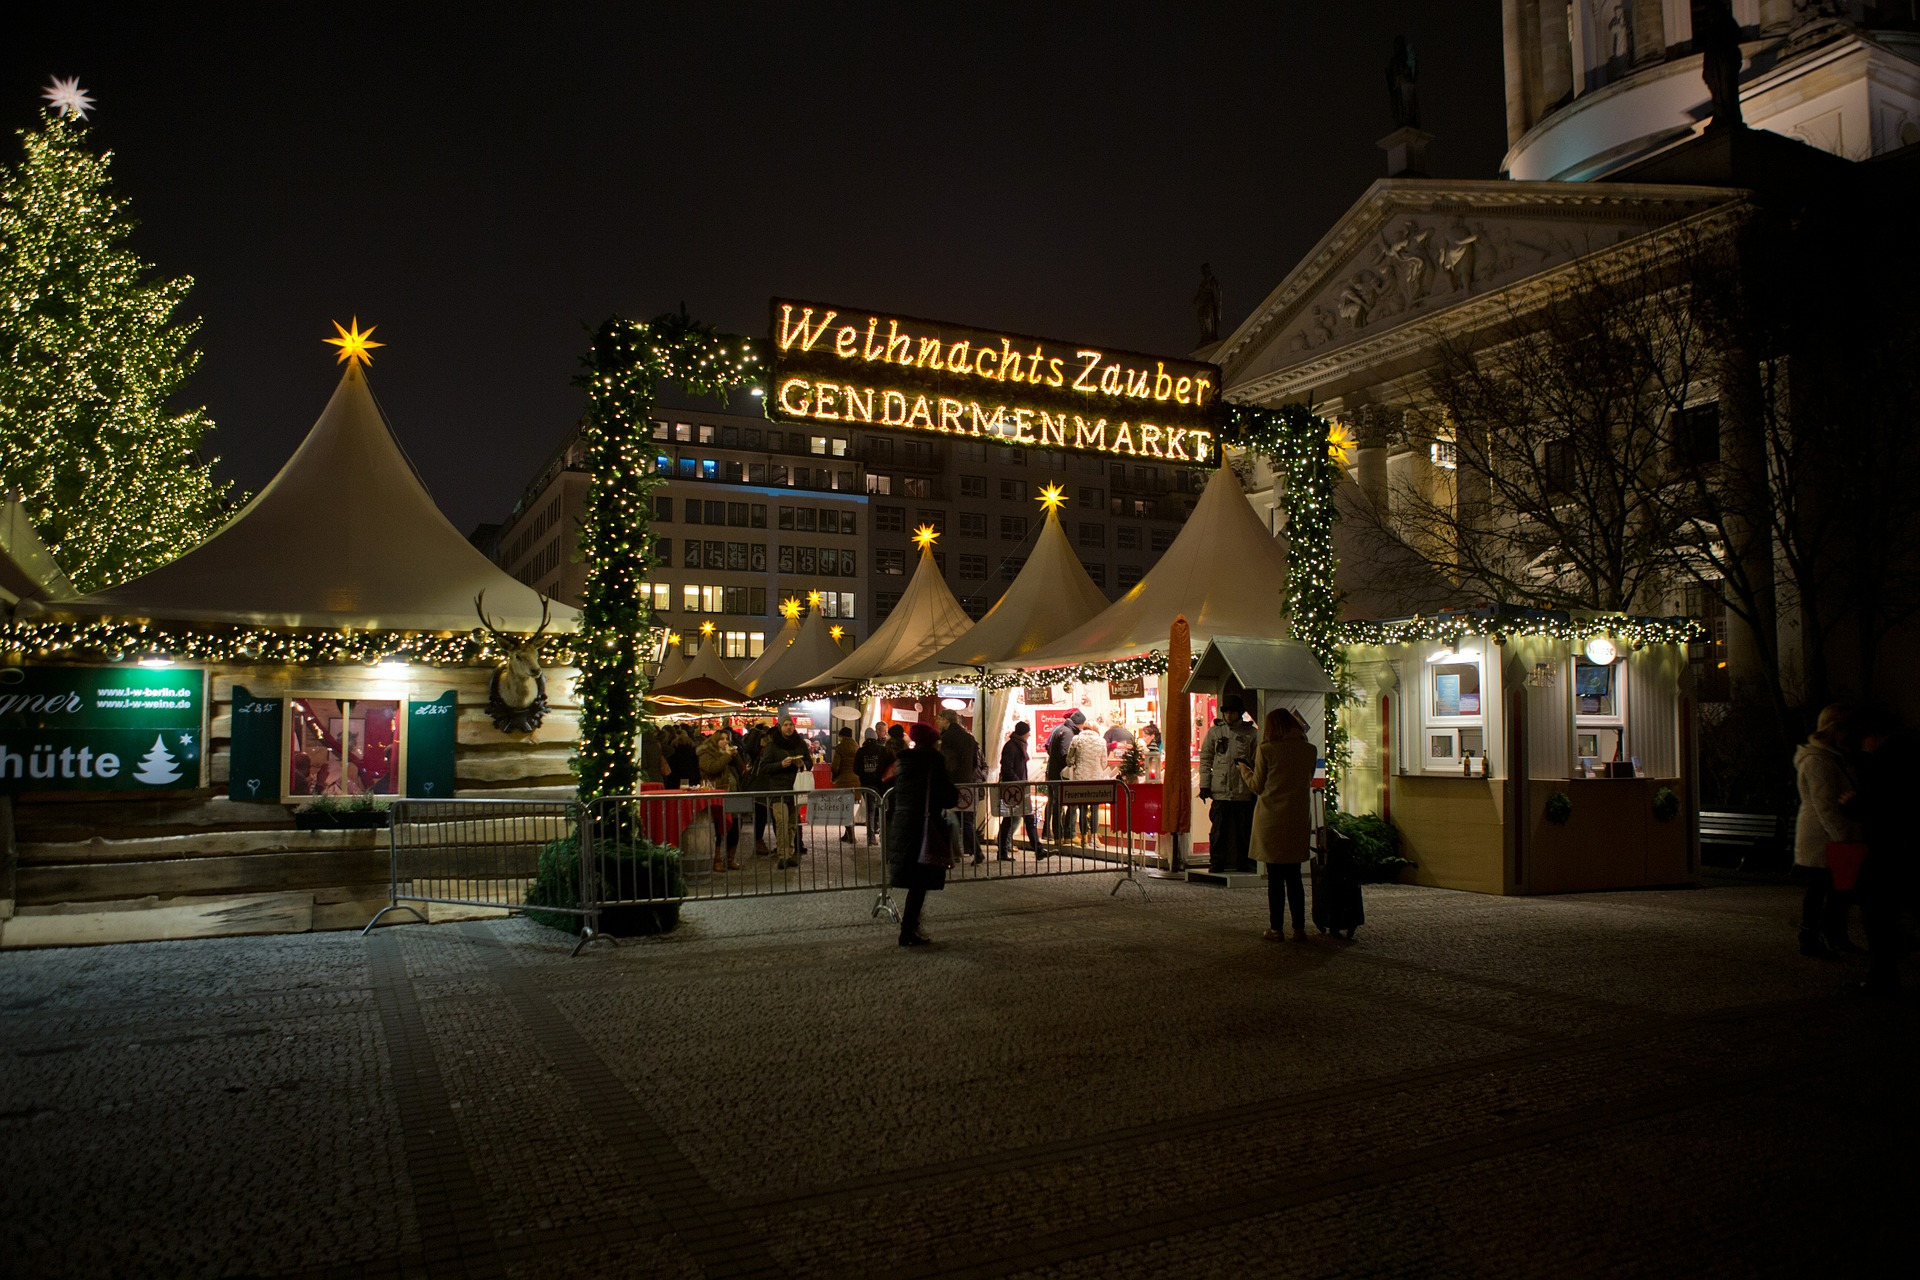 weihnachtsmarkt am gendarmenmarkt in berlin ffnungszeiten adresse und flohmarkt termine. Black Bedroom Furniture Sets. Home Design Ideas